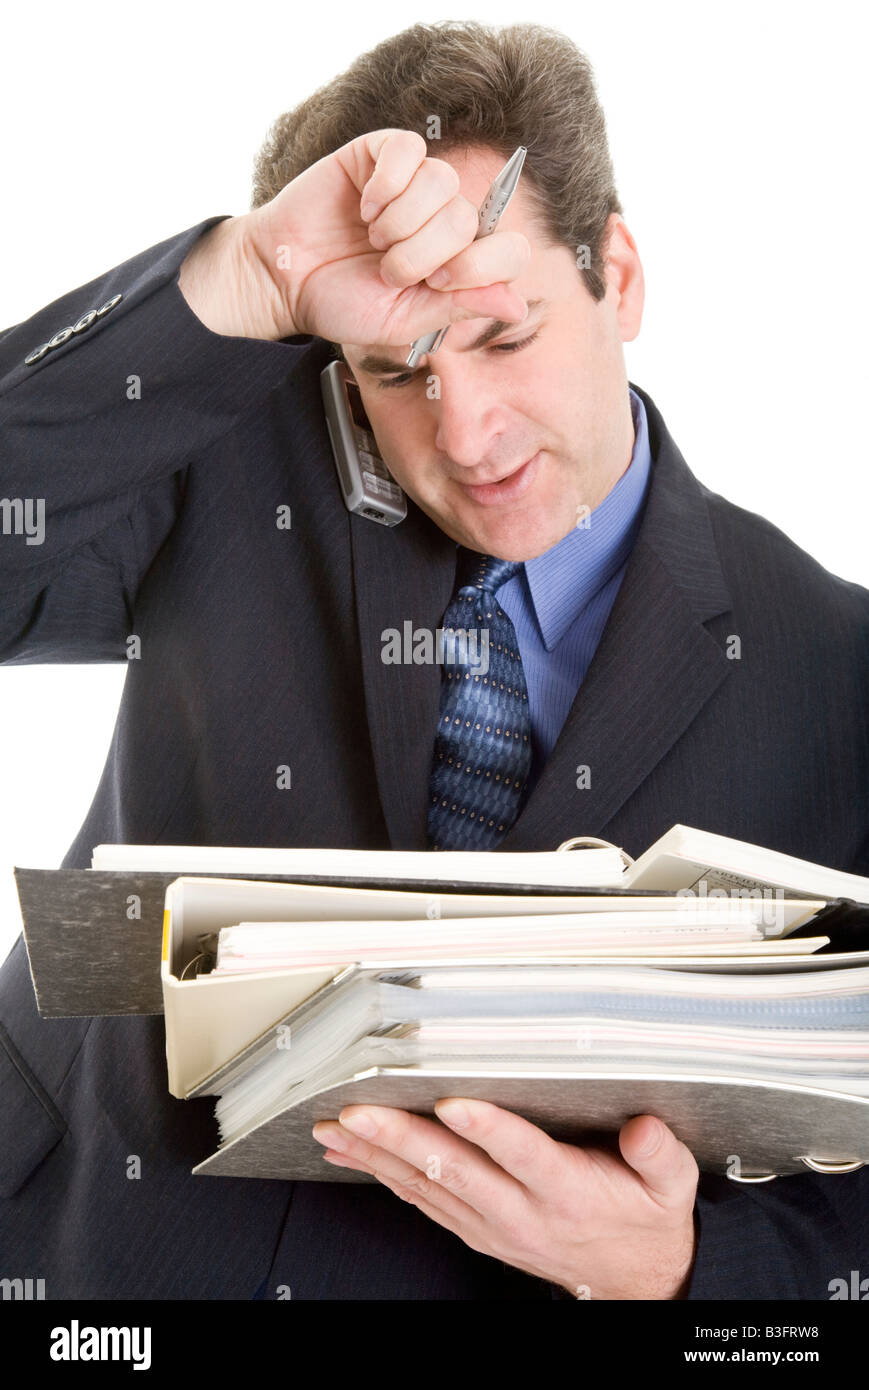 manager calling stressful - Stock Image